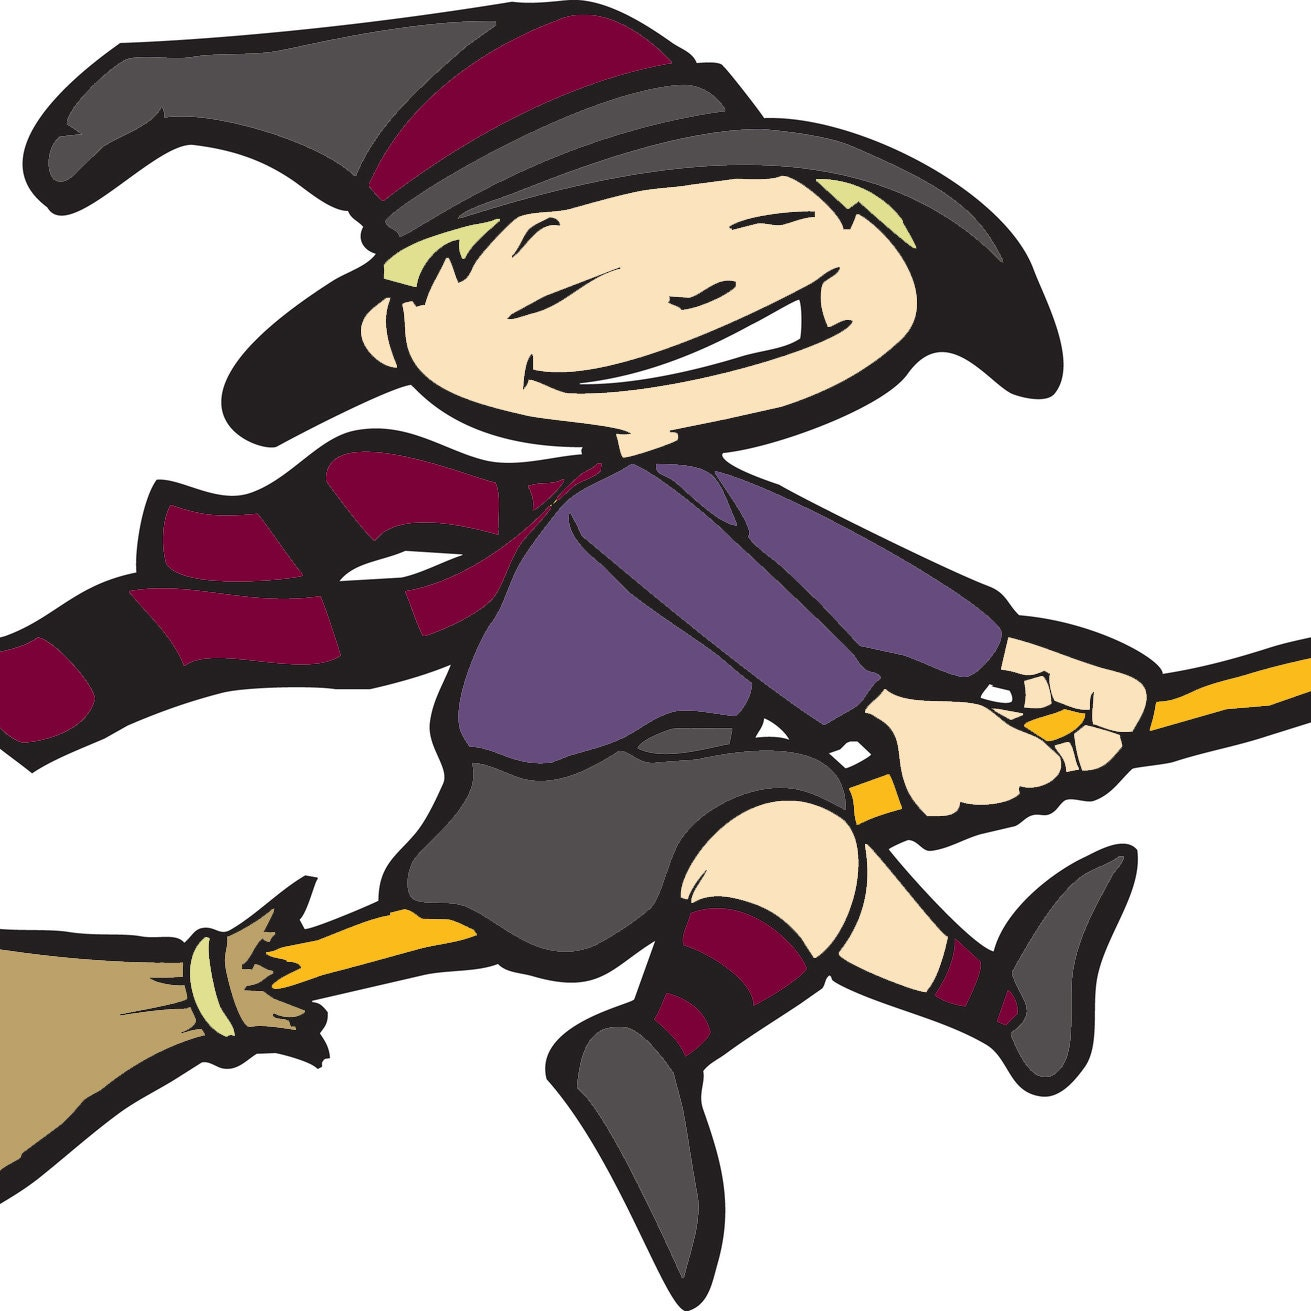 theWoolyWitch